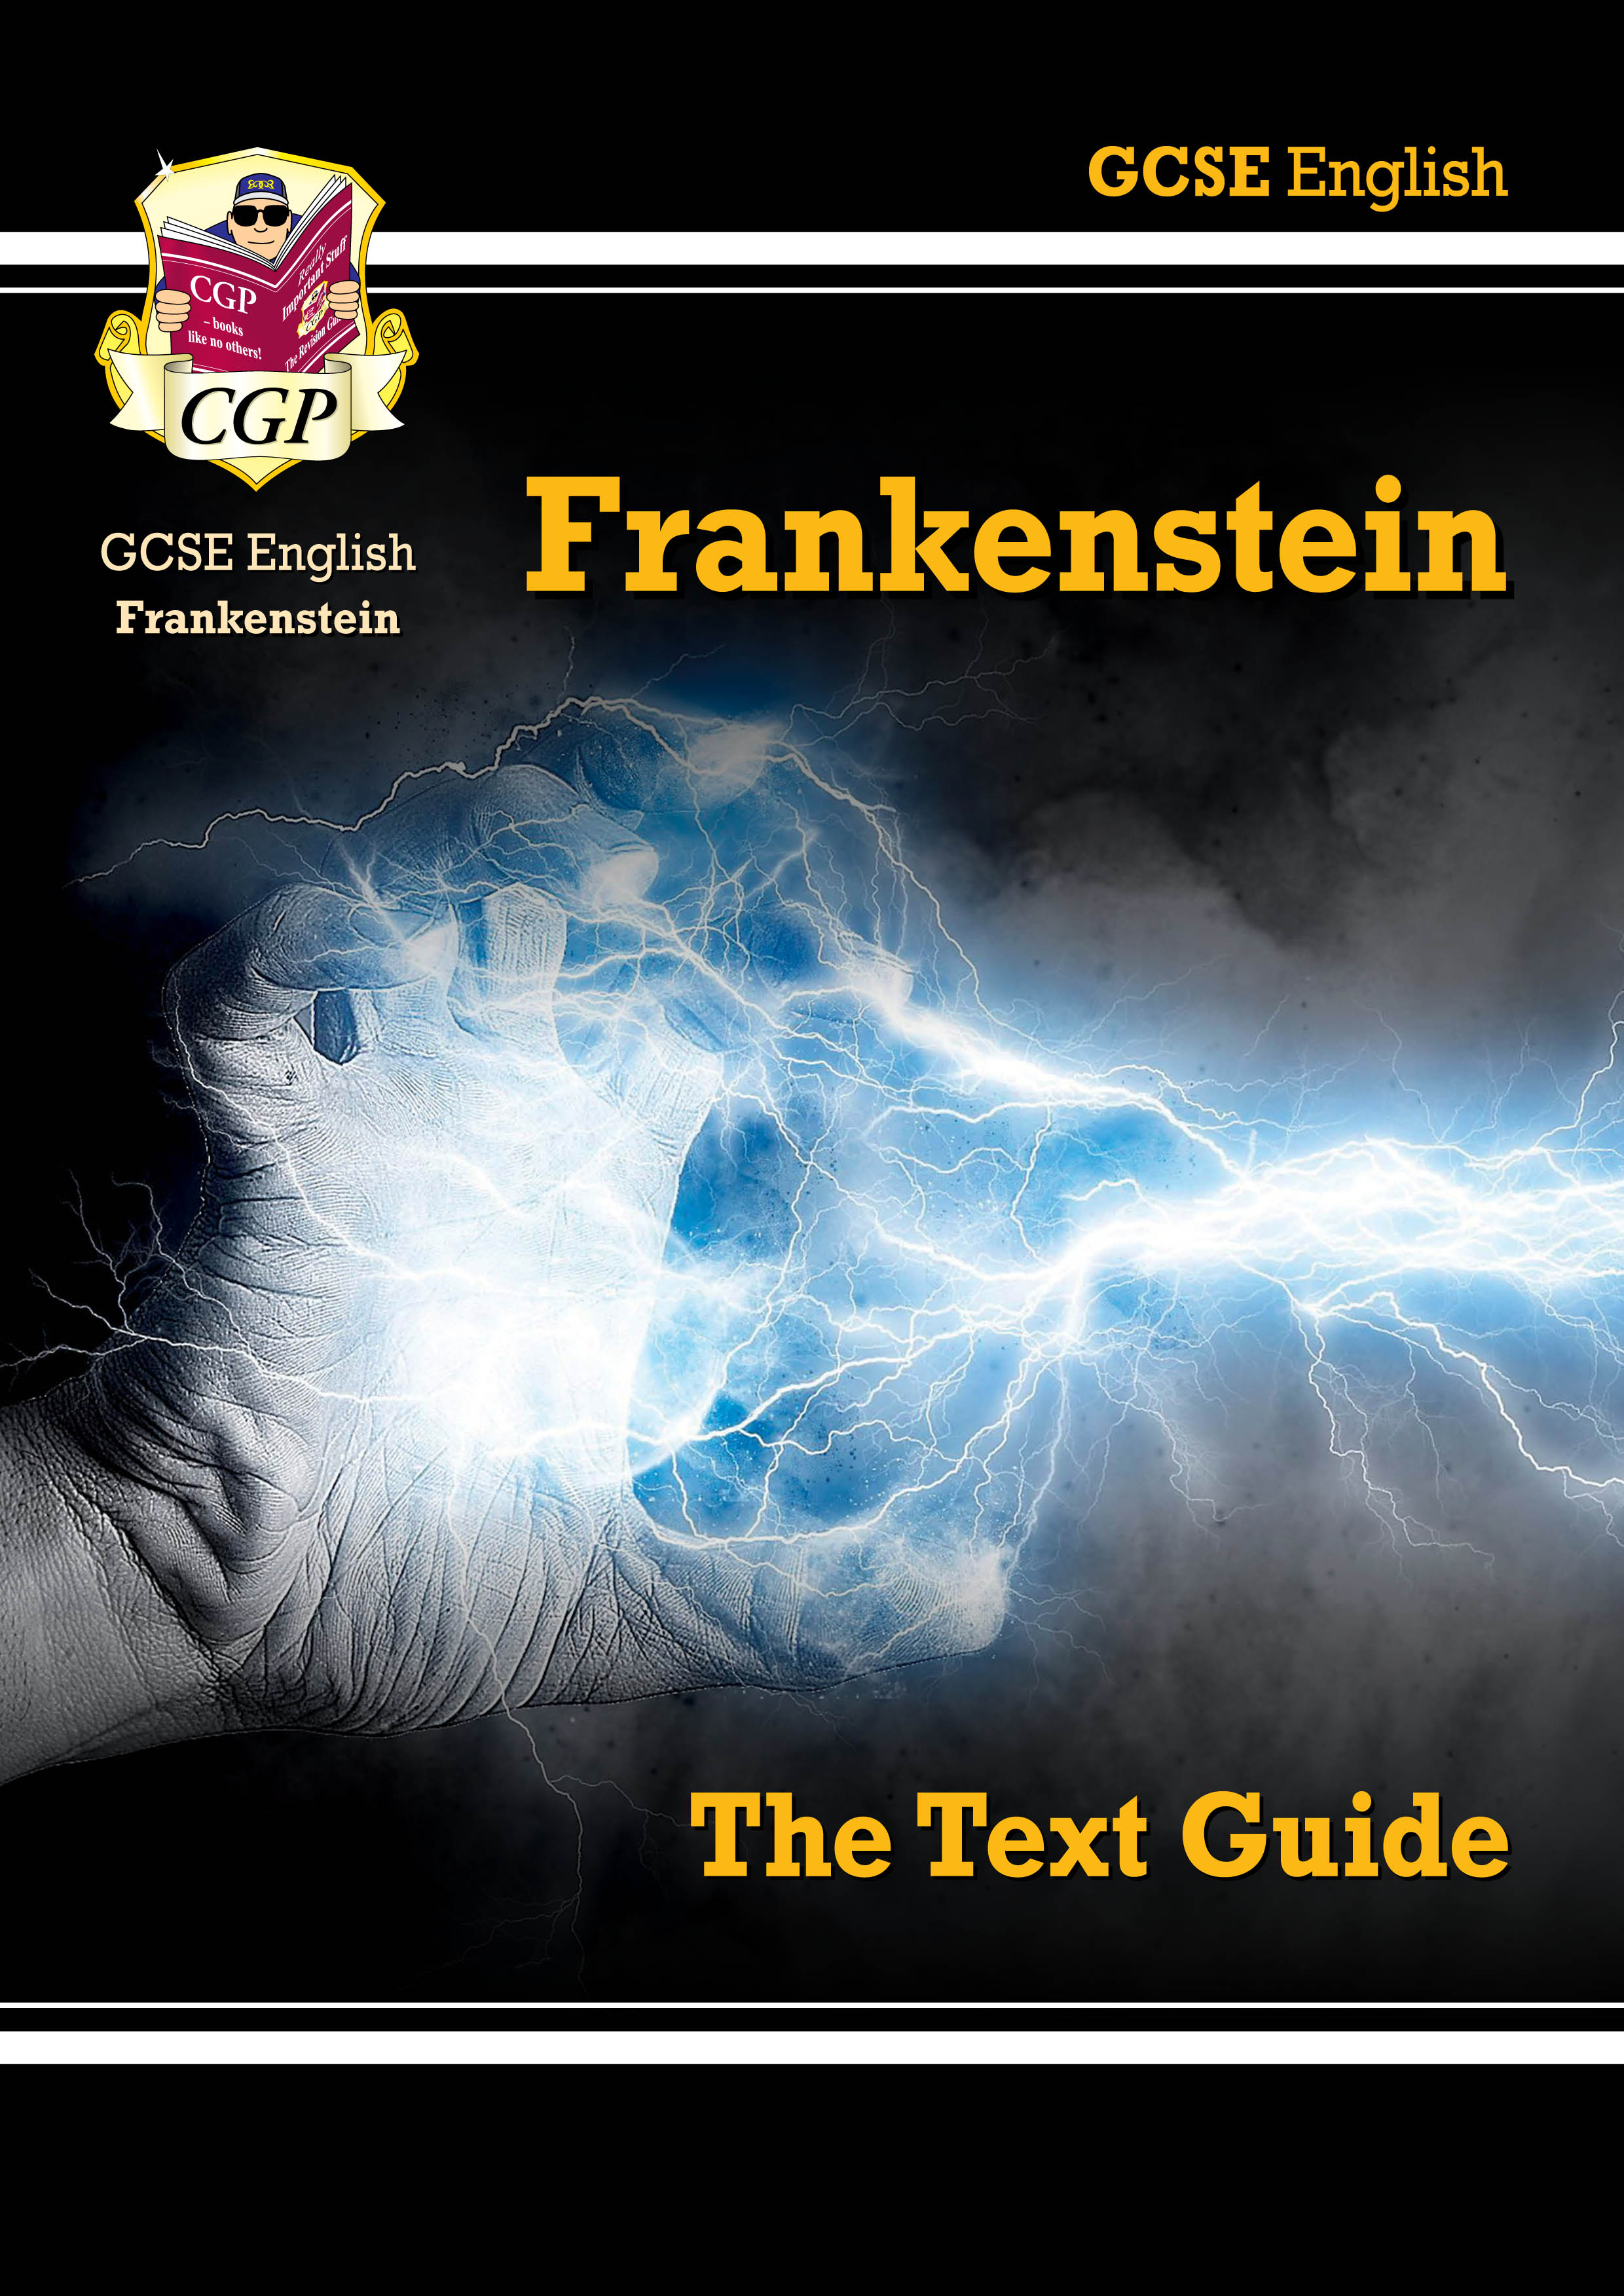 ETF41DK - Grade 9-1 GCSE English Text Guide - Frankenstein